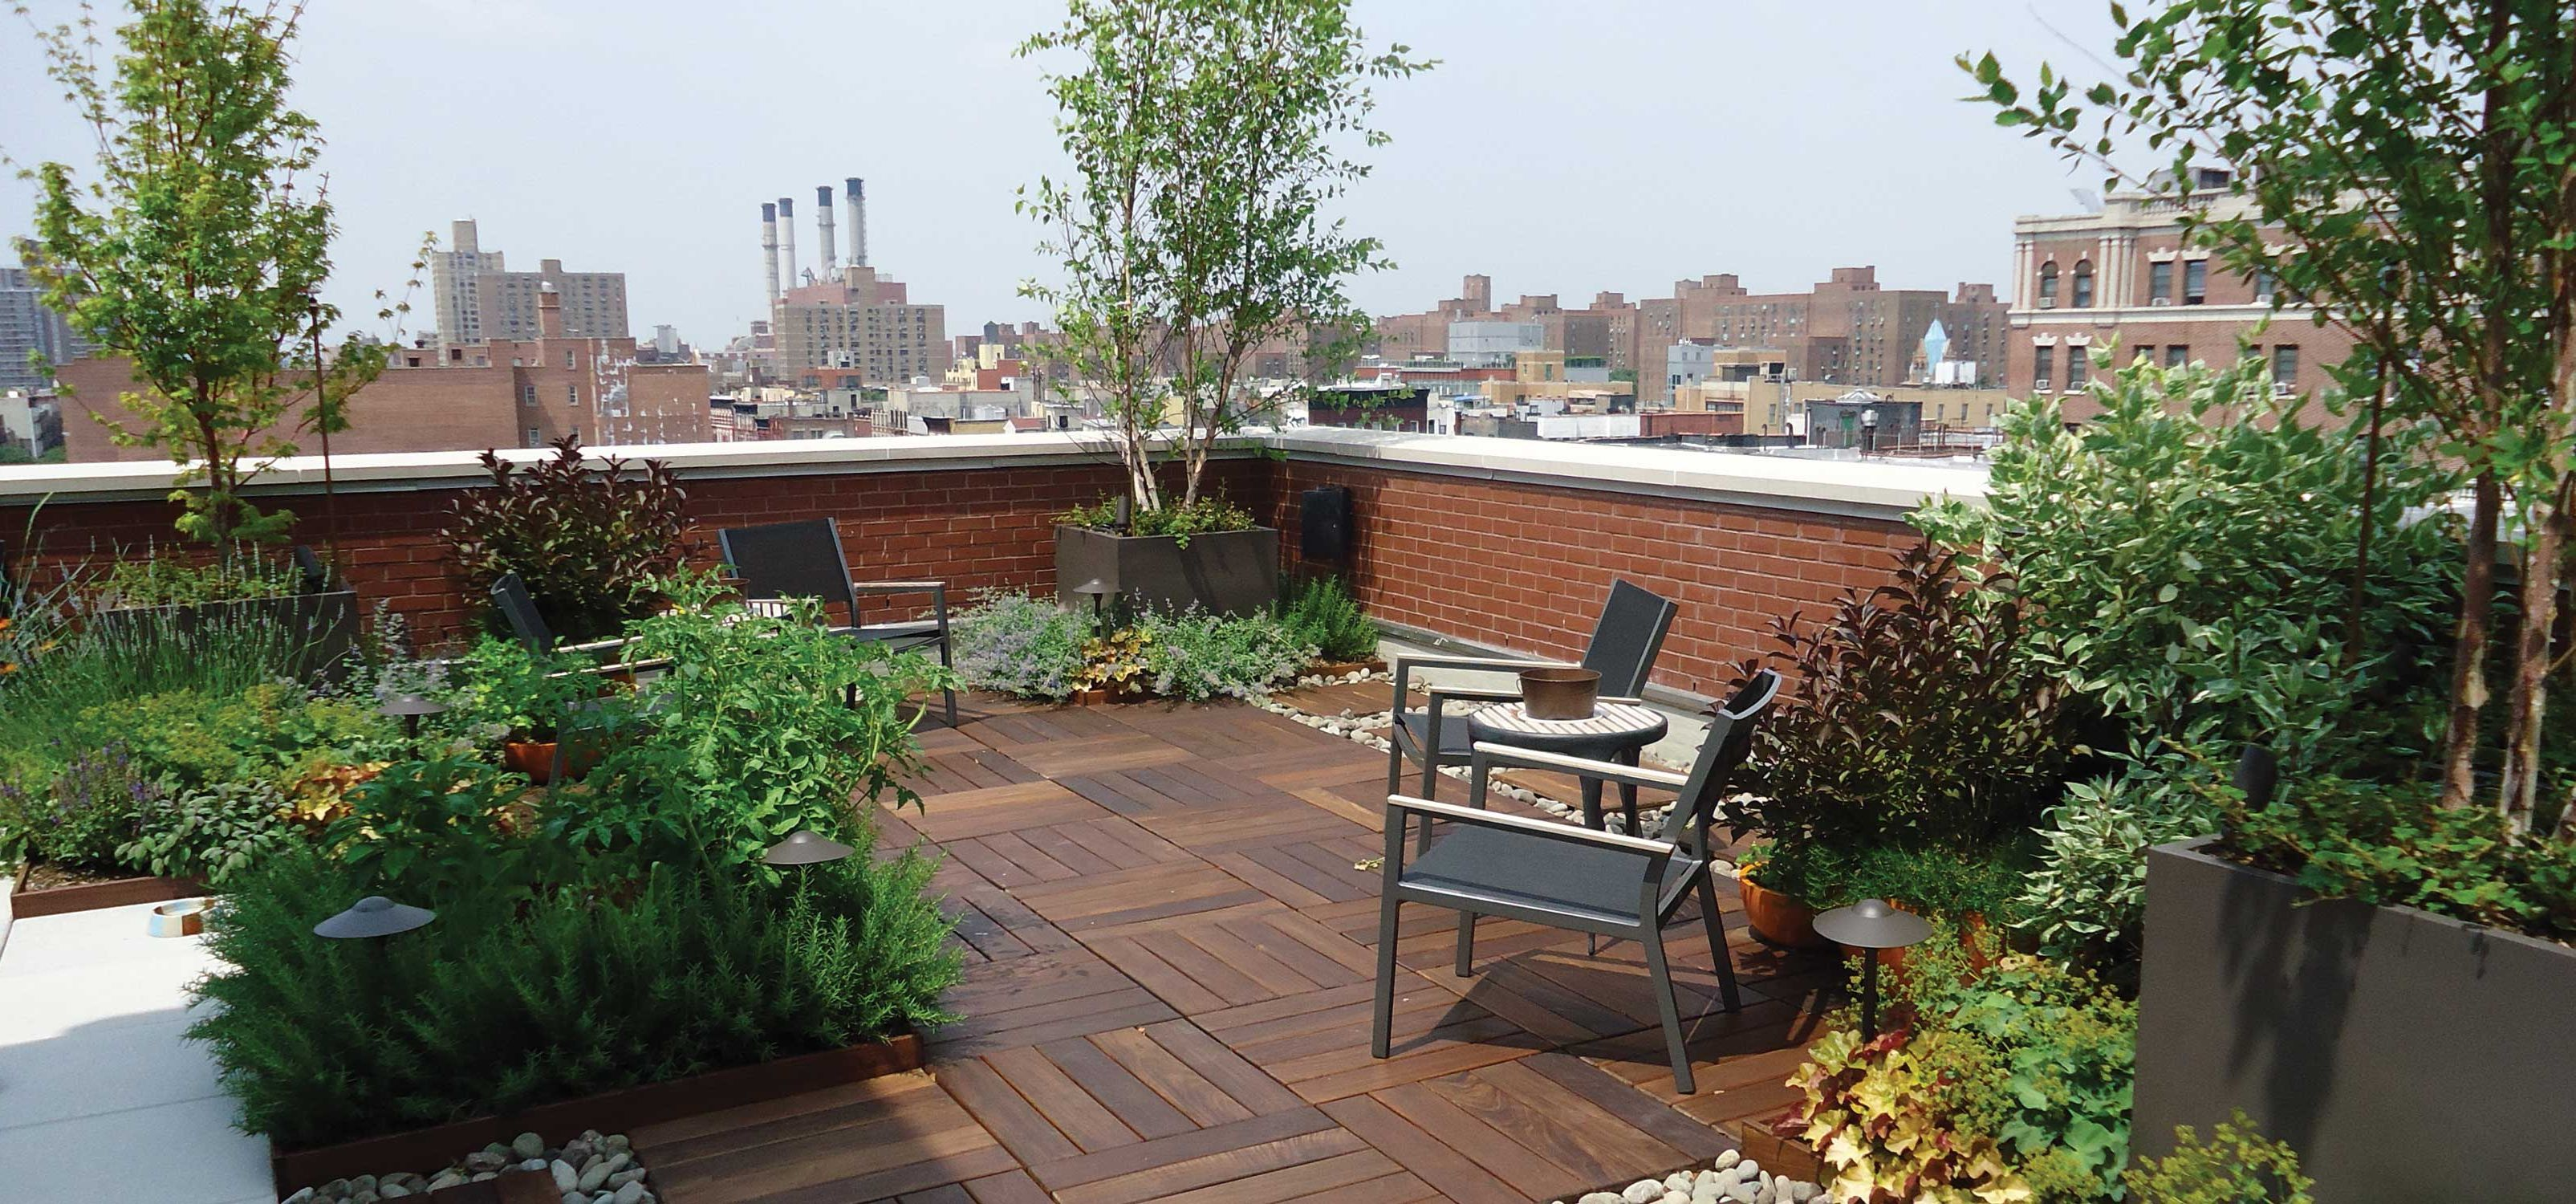 outdoor beautiful cozy terrace garden picture interesting rooftop terrace garden design ideas